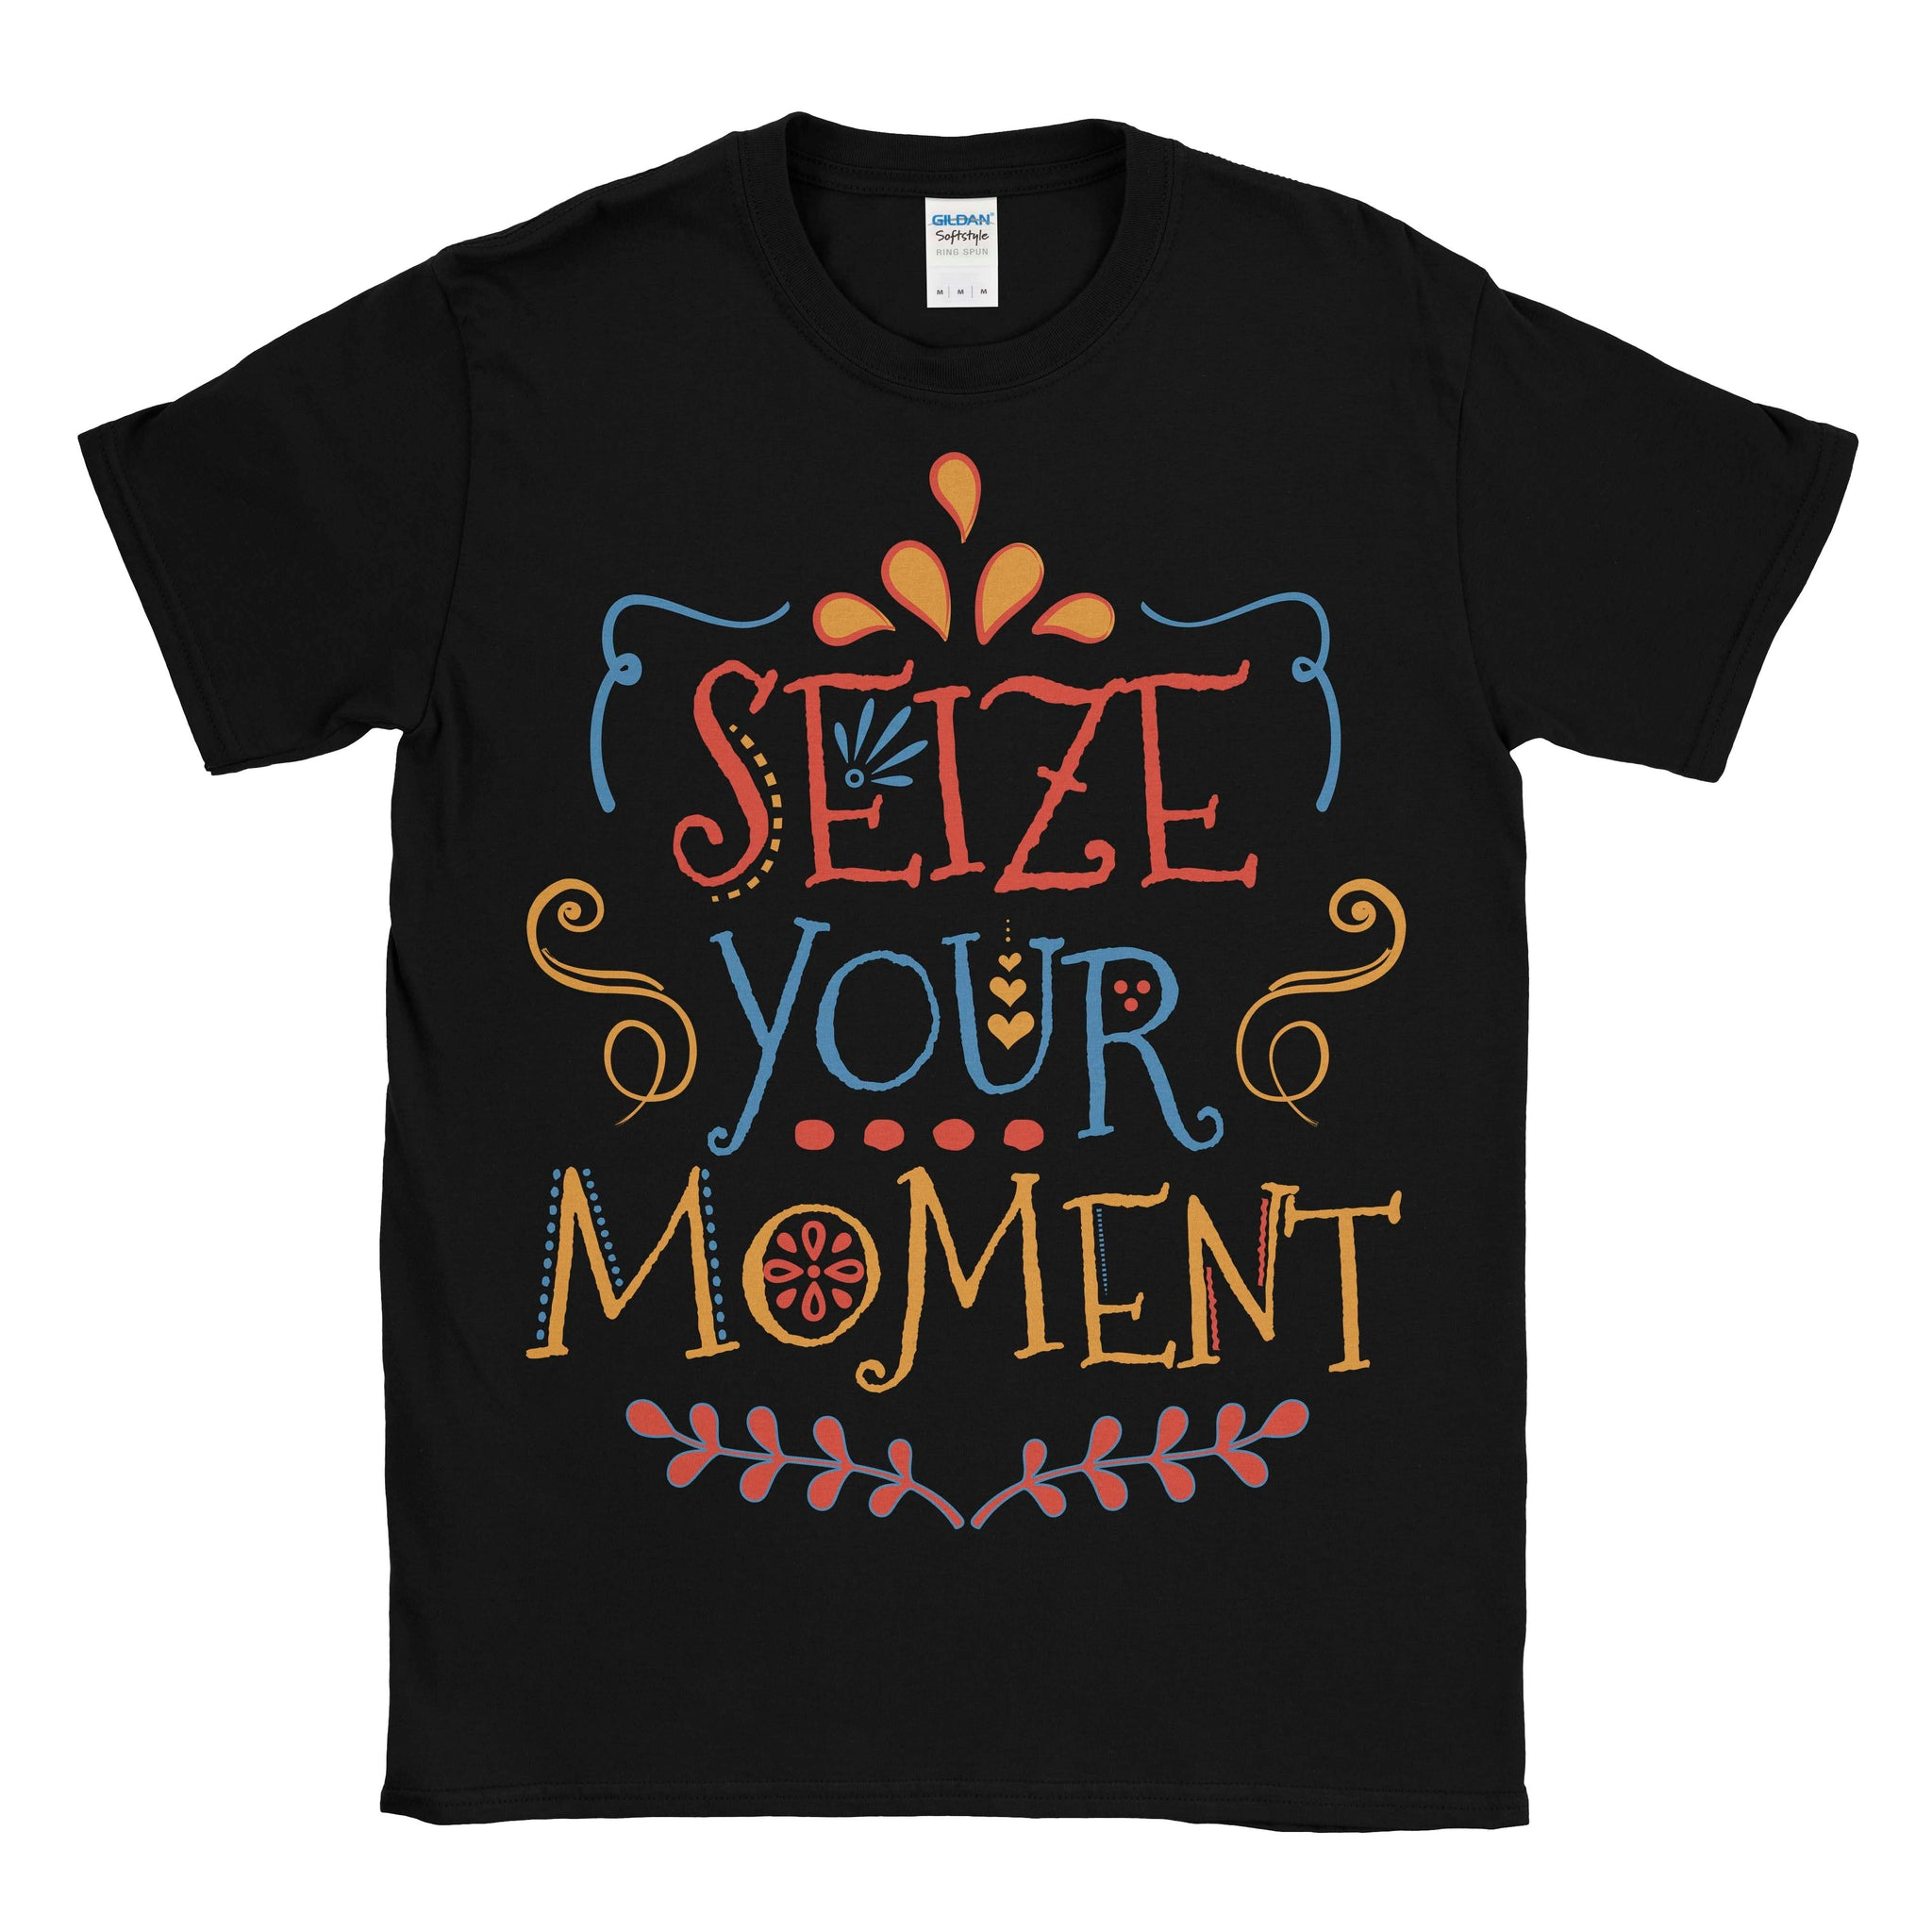 Disney Pixar COCO inspired Seize your moment slogan tshirt